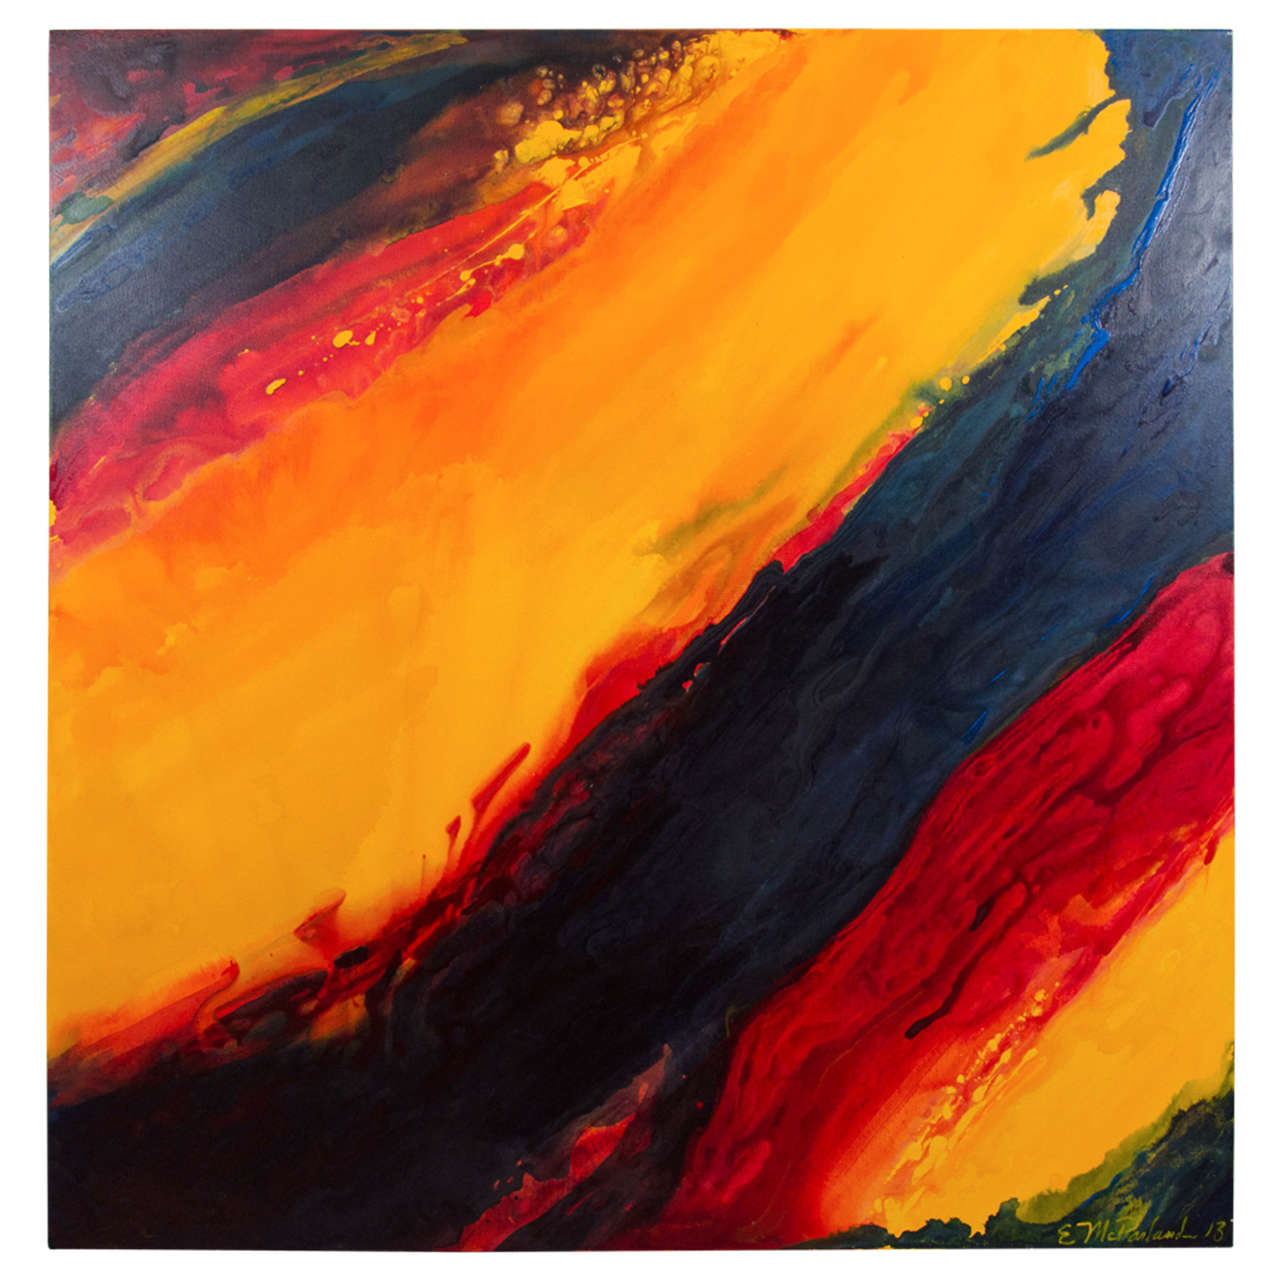 21st Century Original Oil on Canvas Abstract Painting by Erin McParland